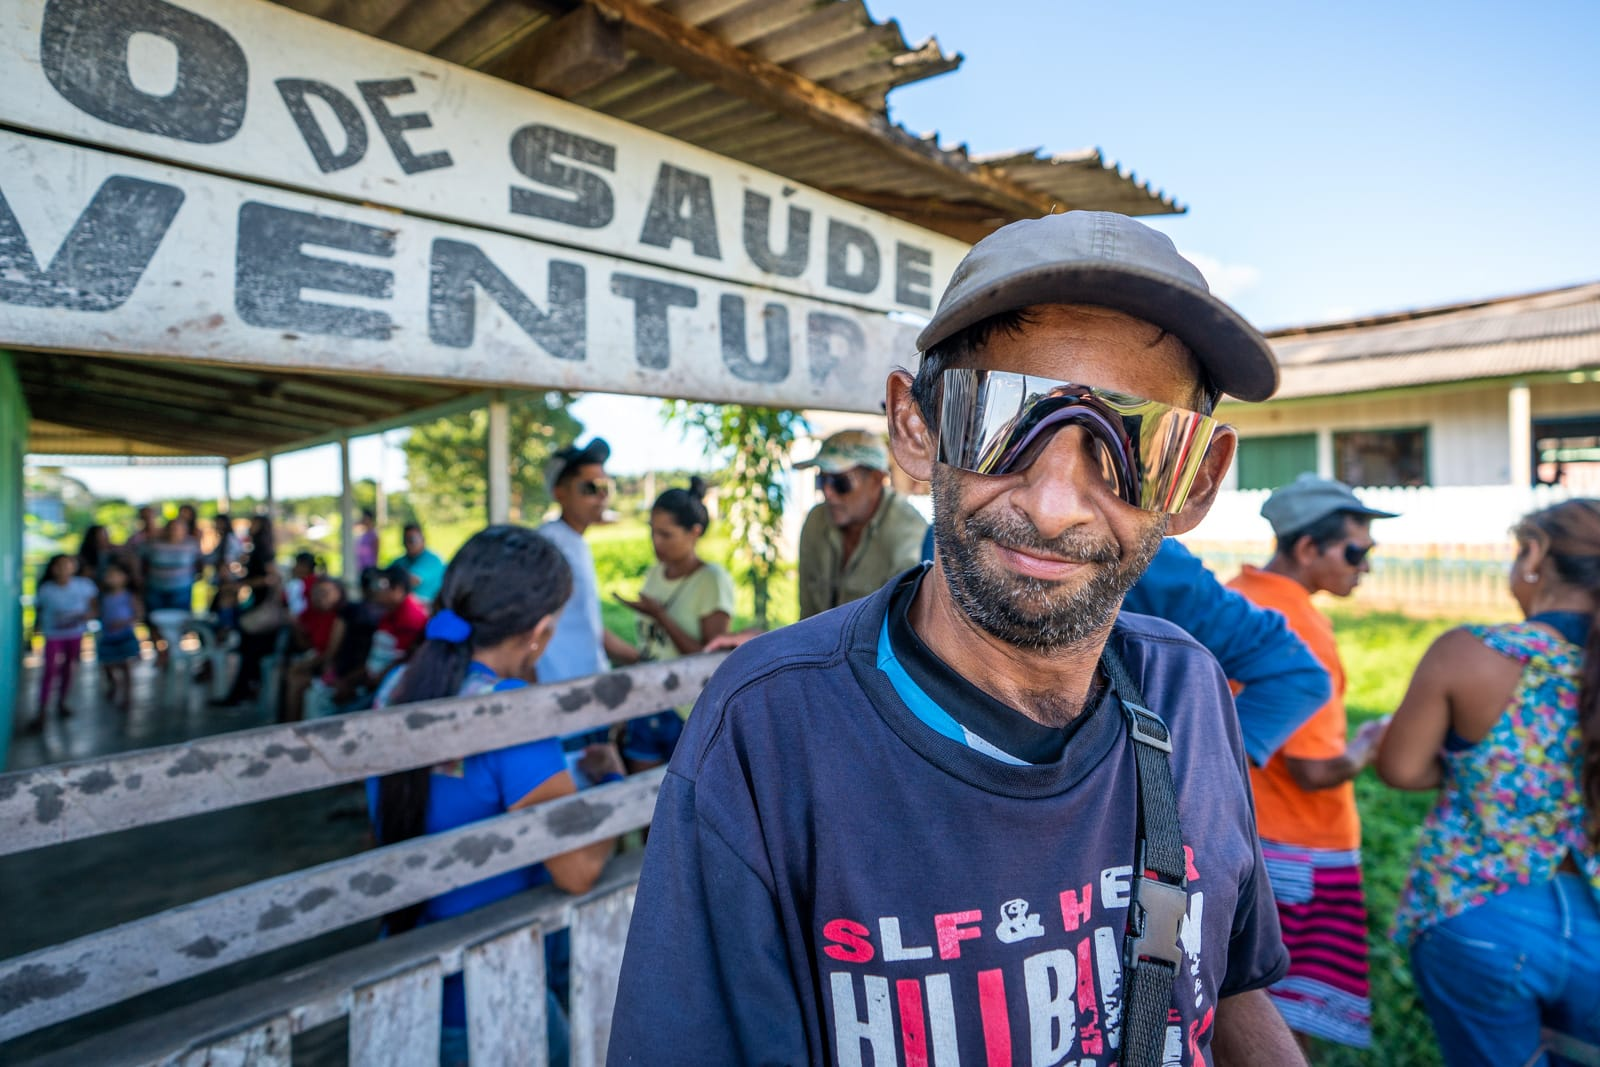 OneSight's mobile eye care clinic in the Brazilian Amazon - Alex the ice cream man with roll up sunglasses on - Lost With Purpose travel blog